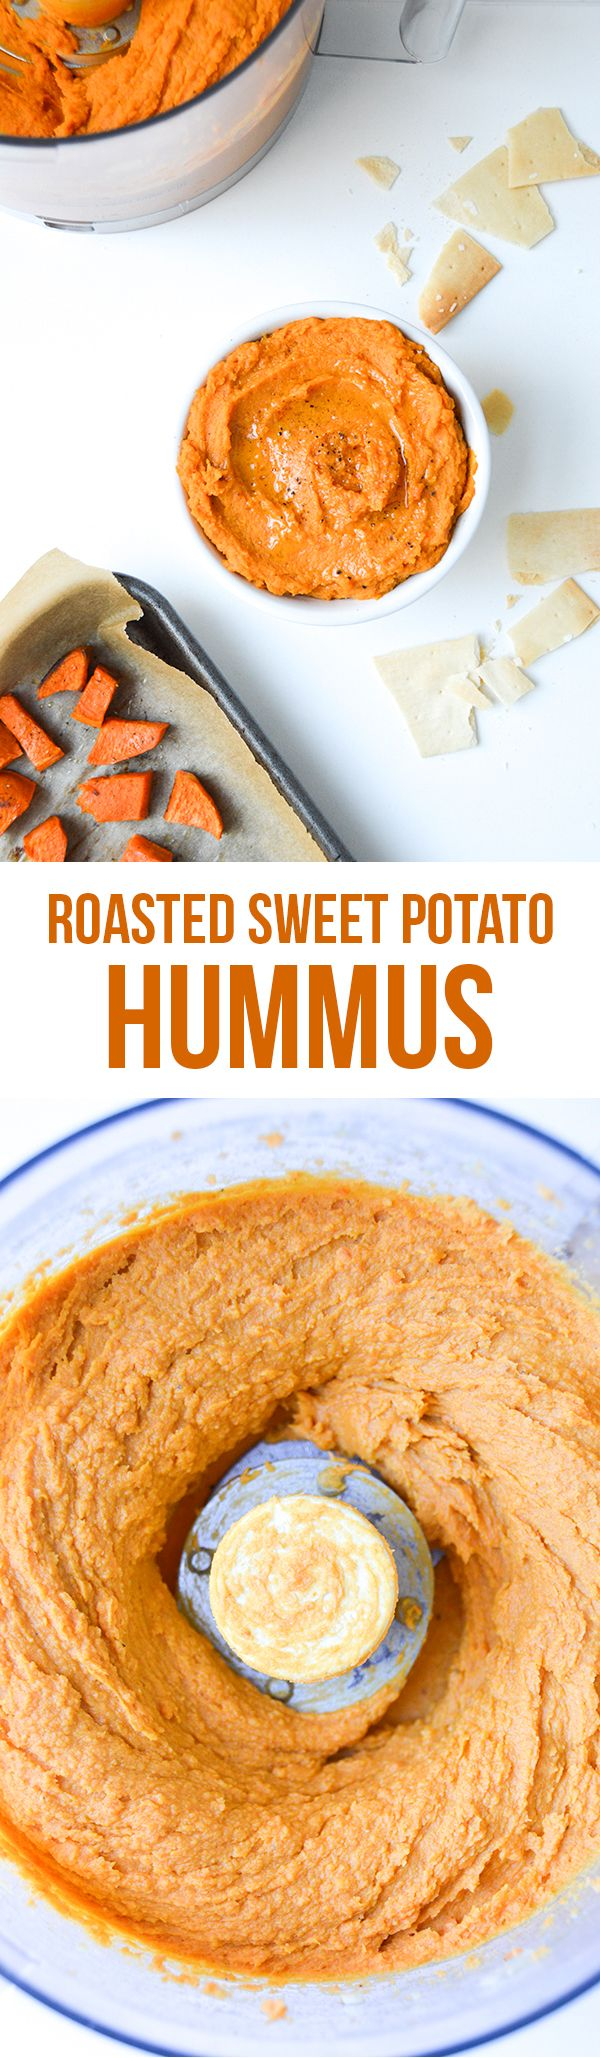 This roasted sweet potato hummus recipe was originally posted to the blog in 2013, but was deserving of new photography so I'm re-publishing it today with new text and pictures. I eat it with…